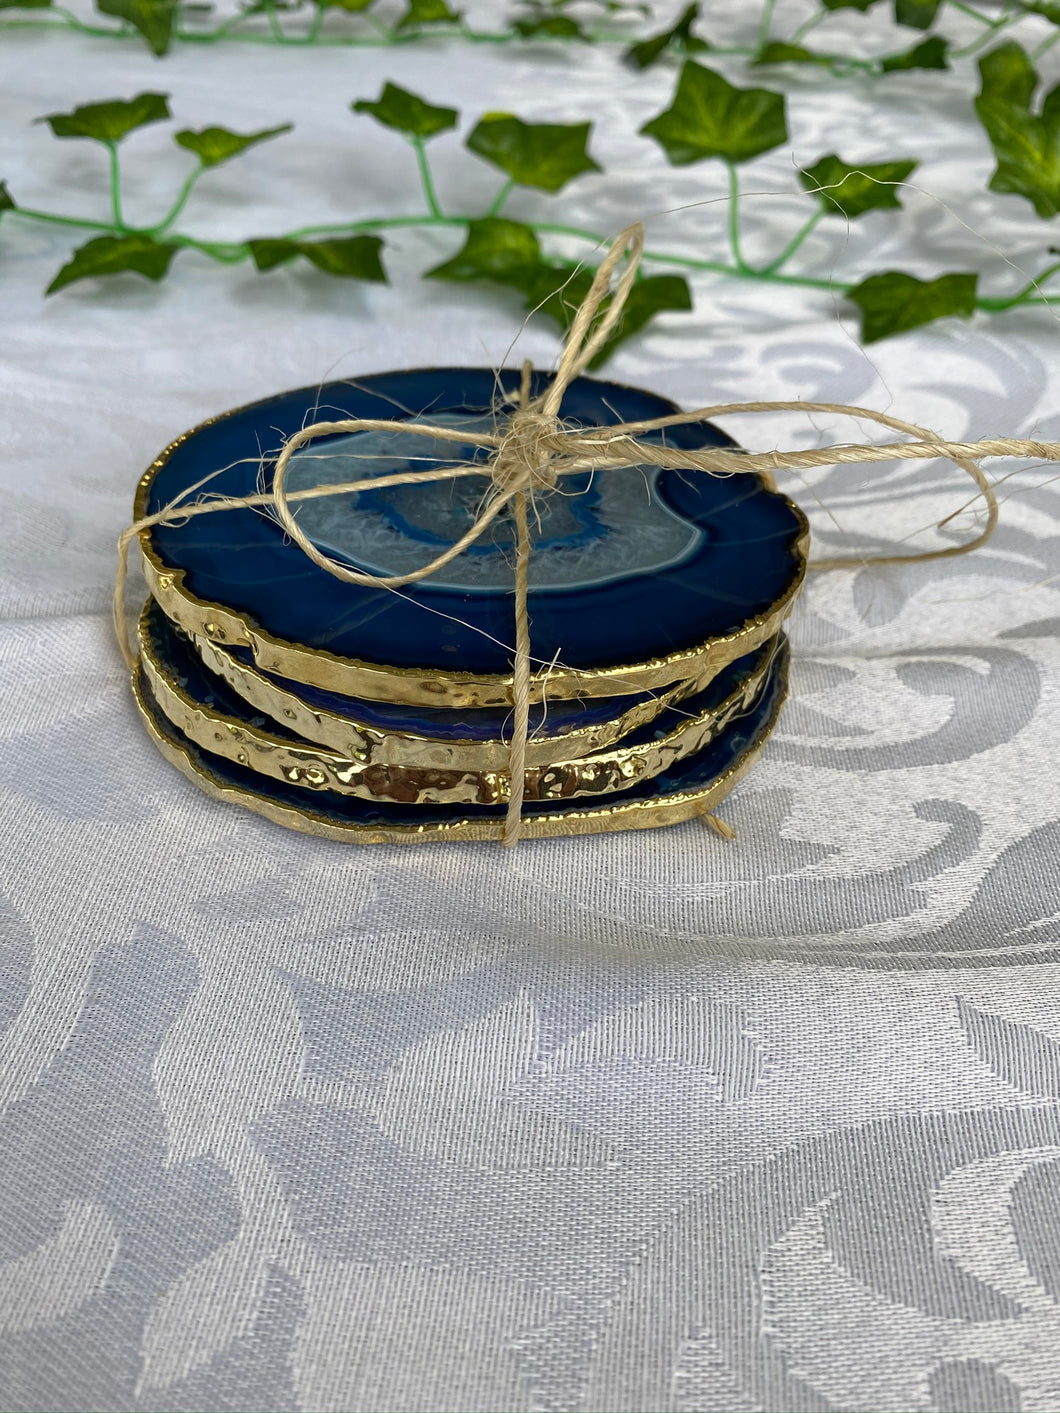 blue agate drink coastes with gold electroplating